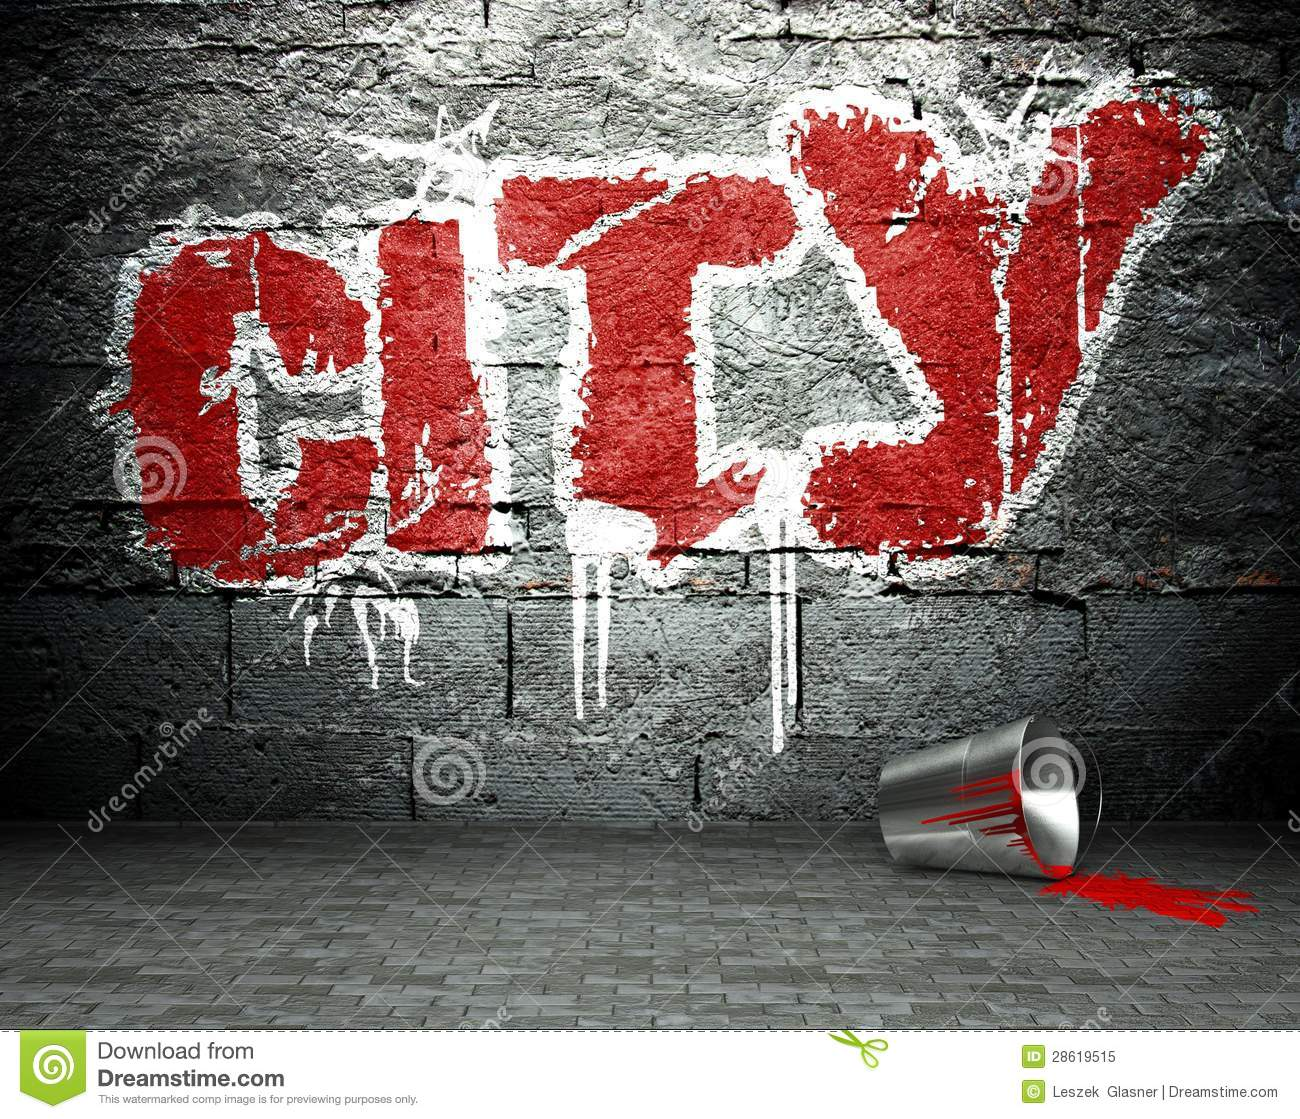 Graffiti Wall With City, Street Background Royalty Free